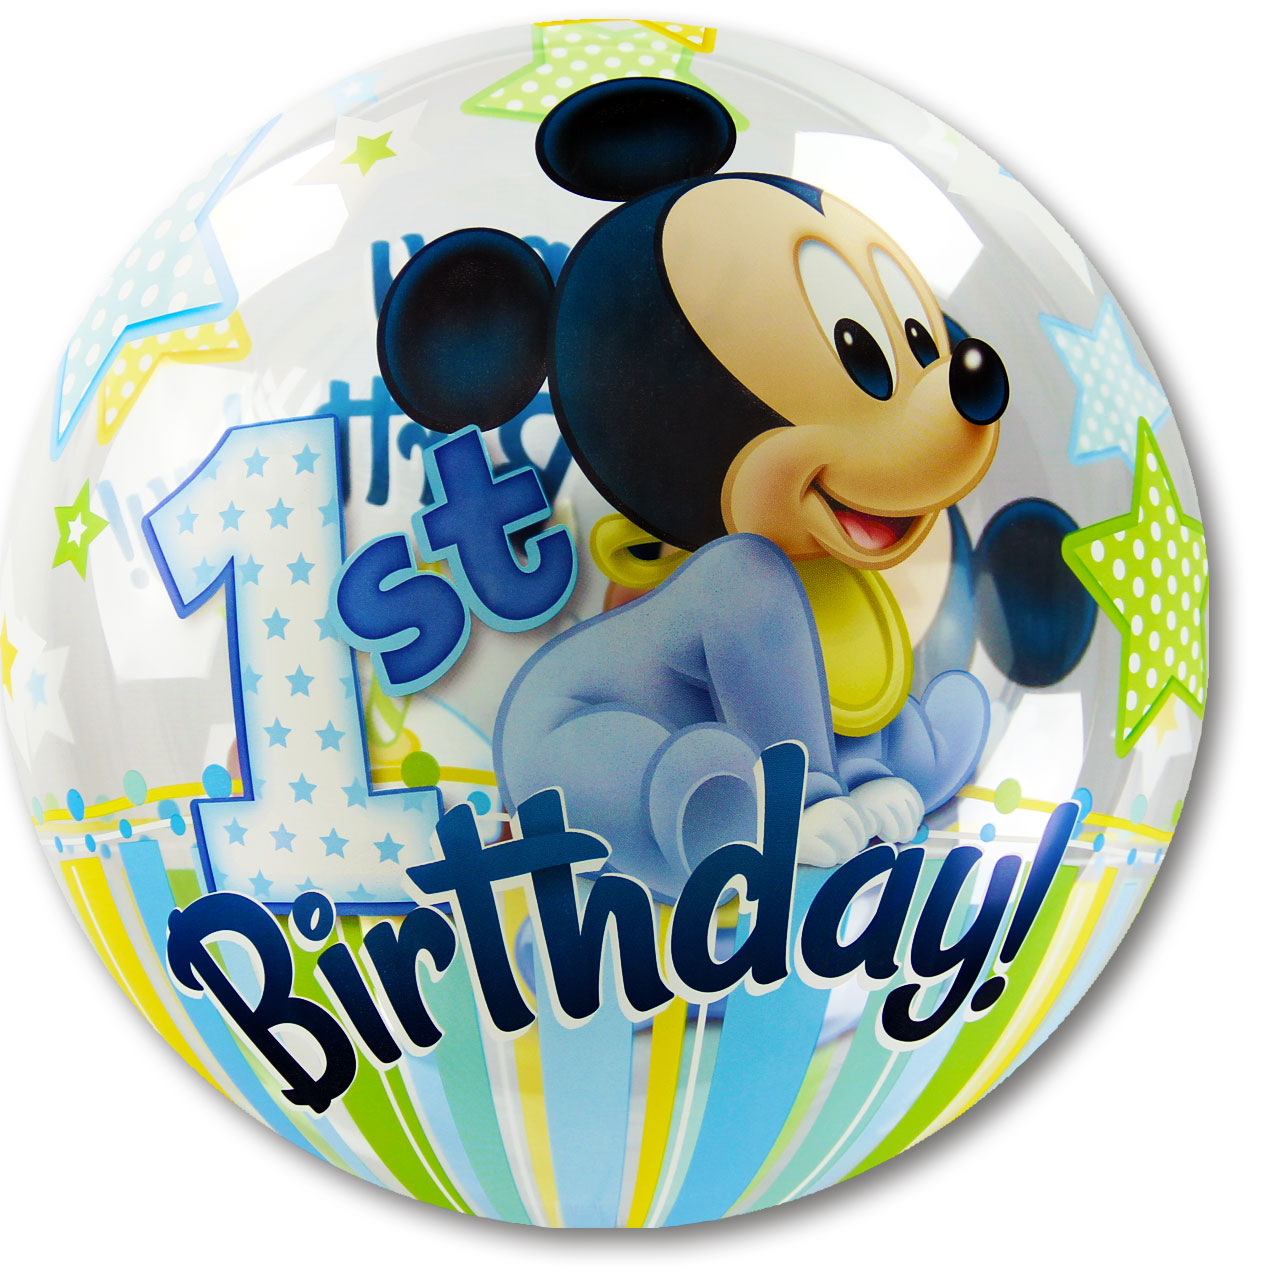 Gabis ballonerie bubble ballon mickey mouse 1 for Deko 1 geburtstag junge